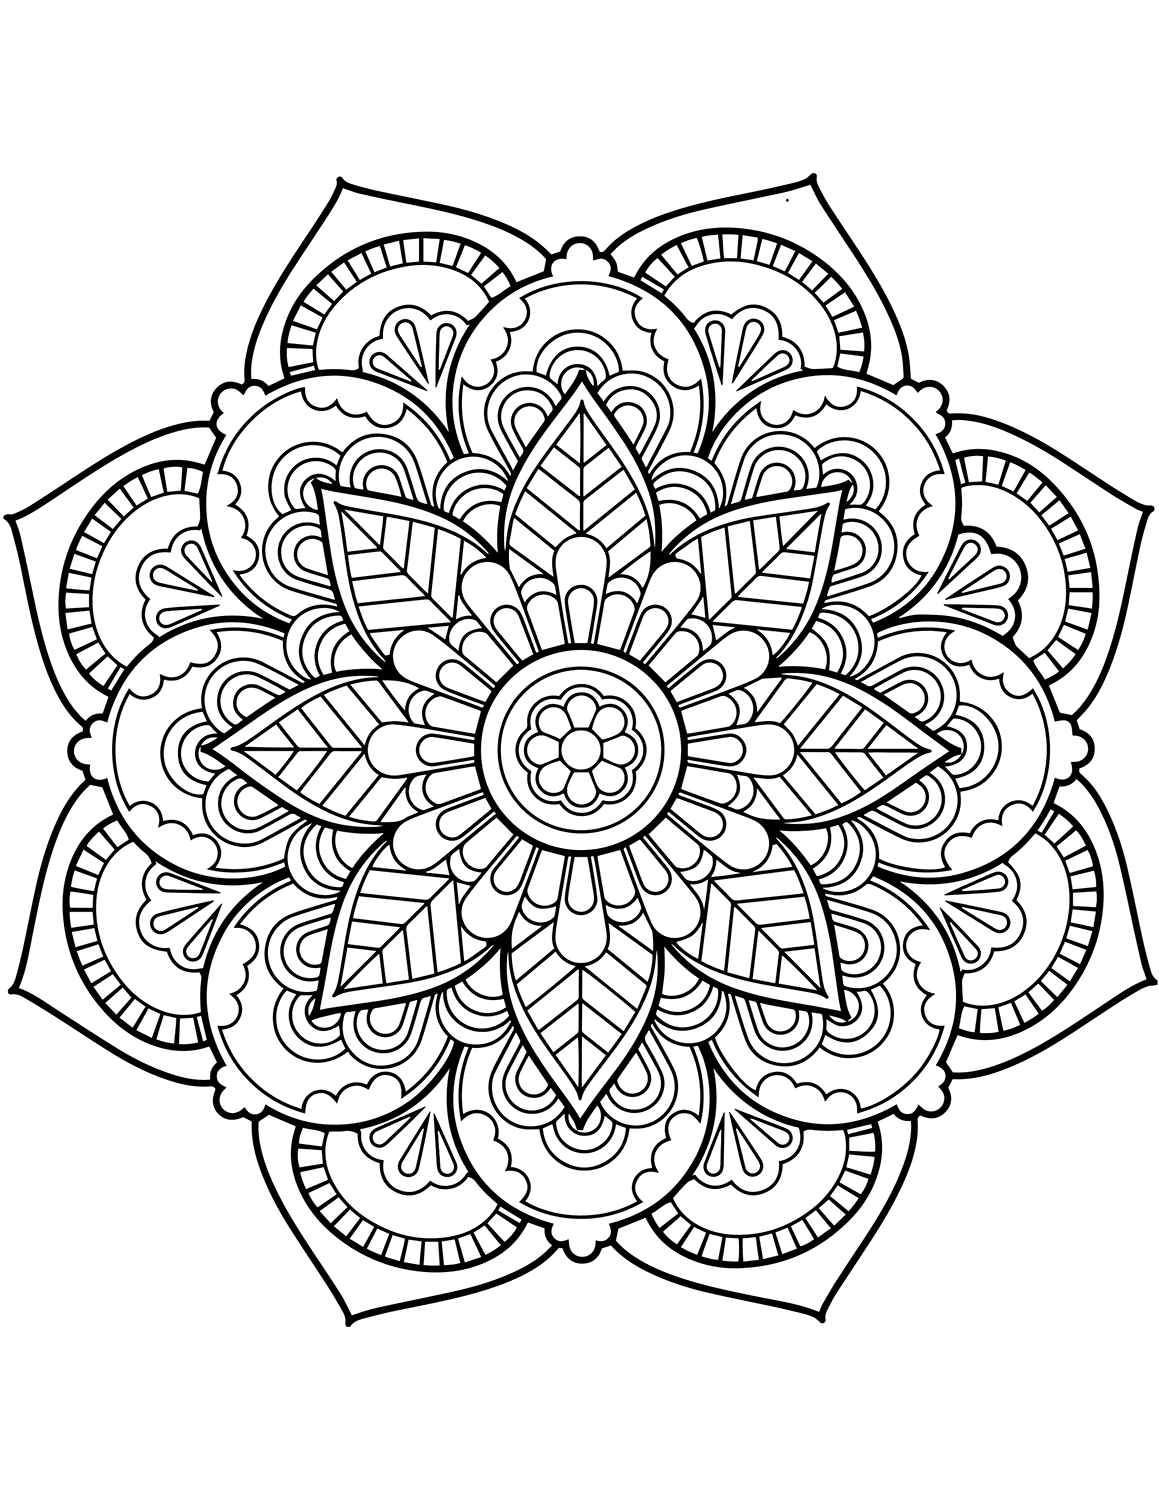 symmetrical coloring pages craftsactvities and worksheets for preschooltoddler and symmetrical pages coloring